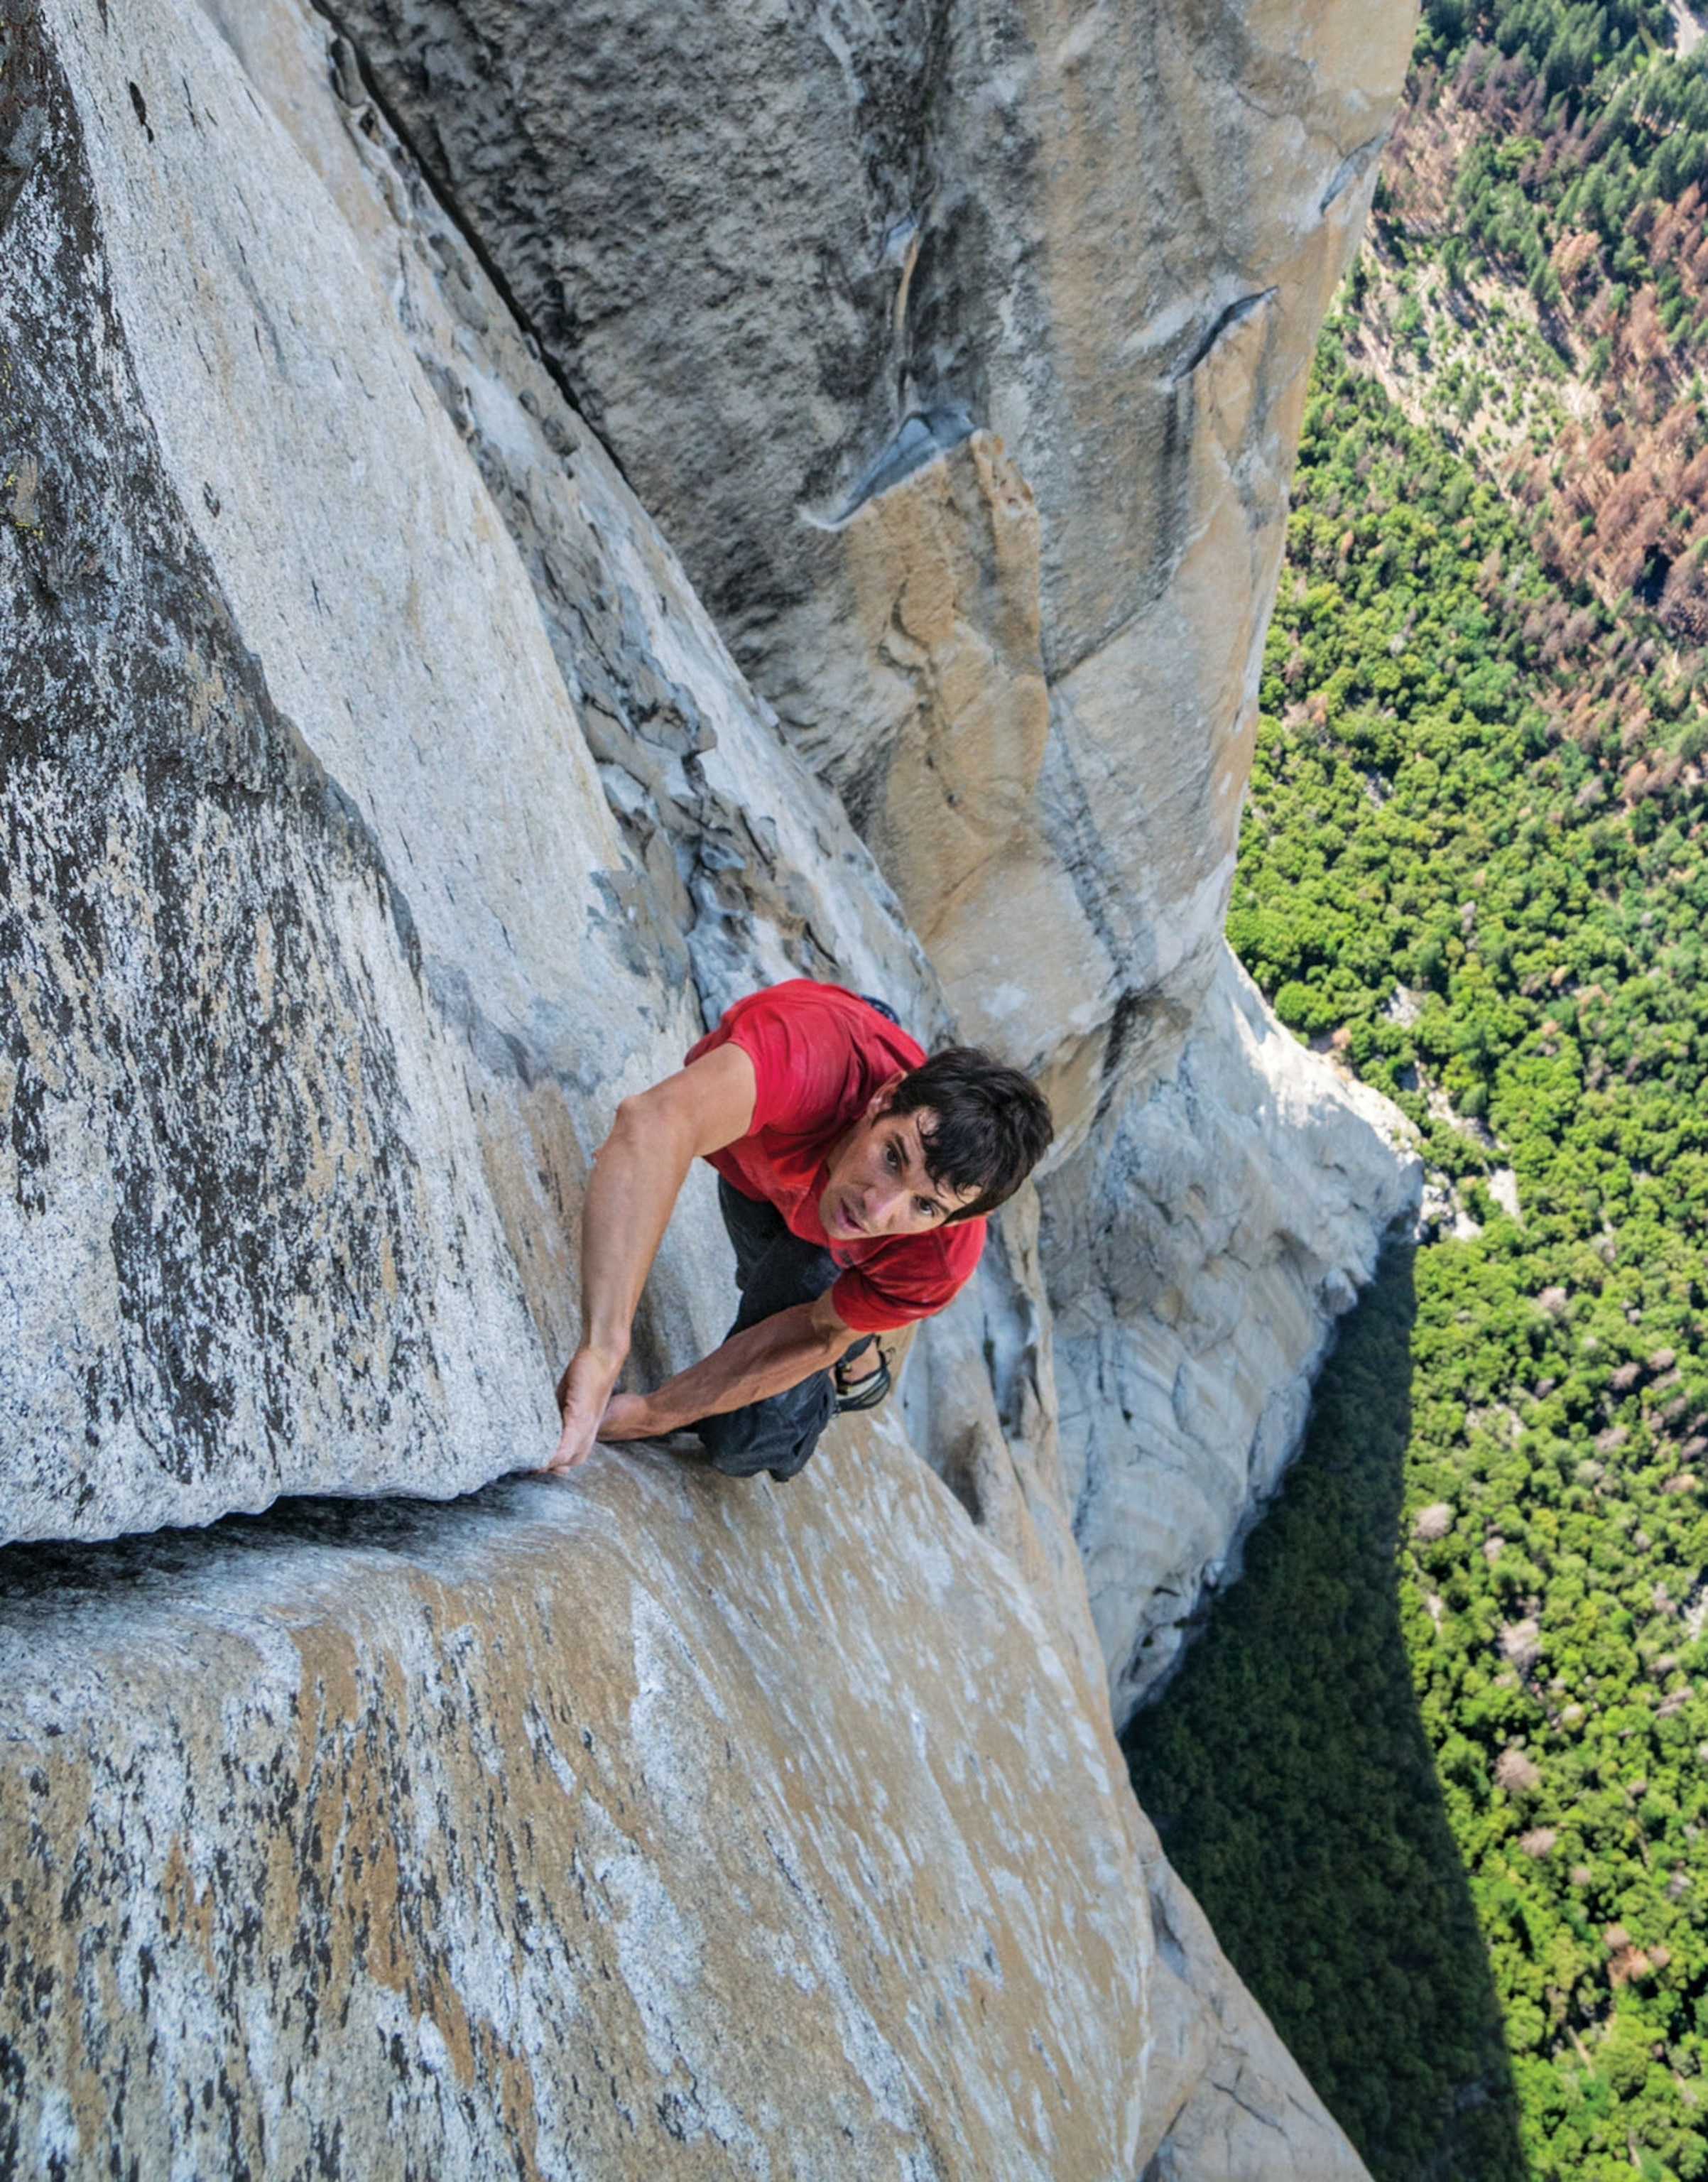 Alex Honnold Filmed in National Geographic's 'Free Solo' Movie